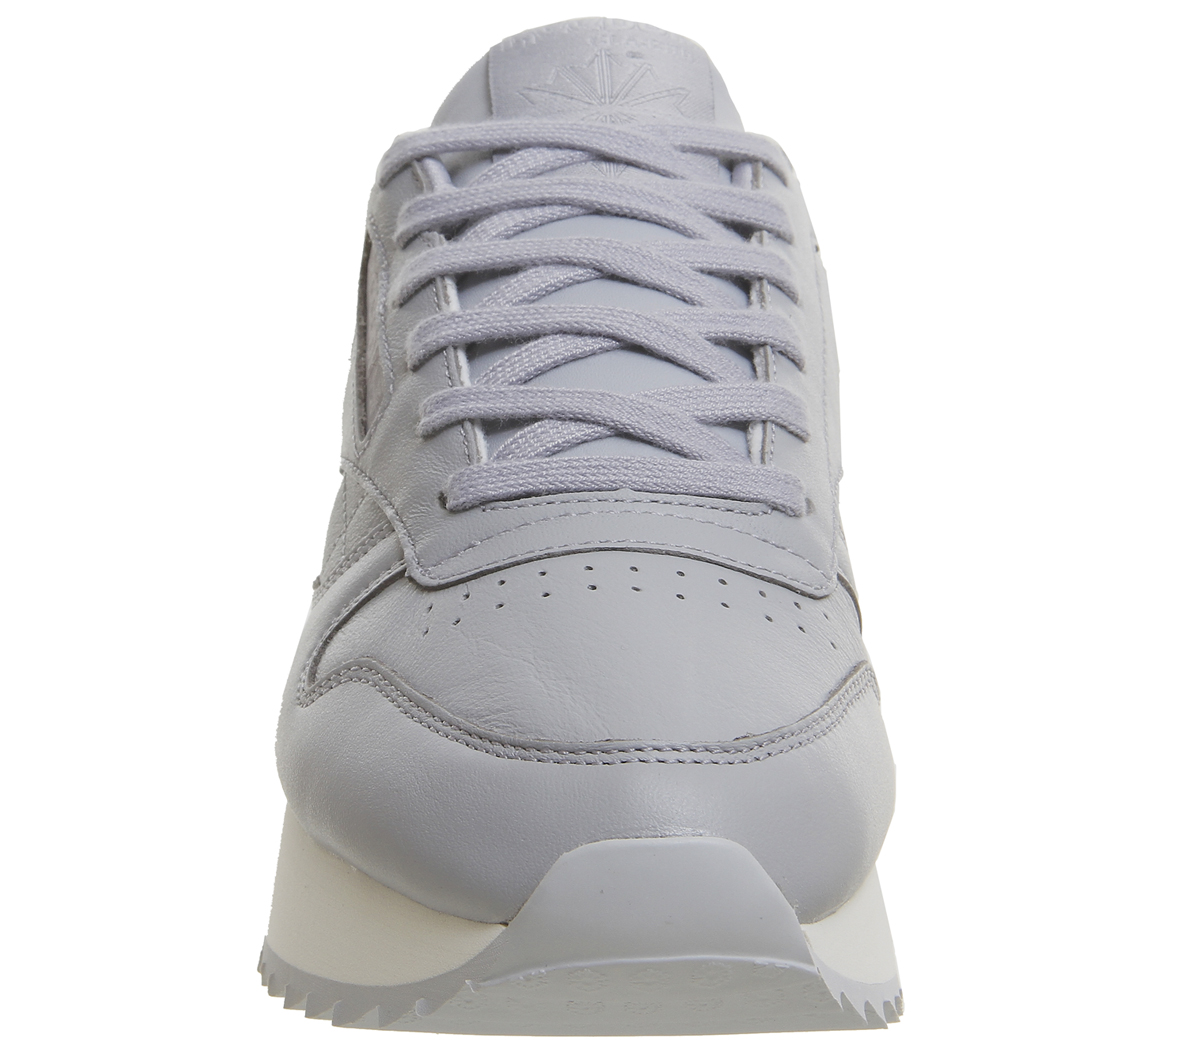 4d8653c3a6f06 Sentinel Womens Reebok Classic Leather Bold Trainers Cool Shadow Cloud Grey  Chalk Trainer